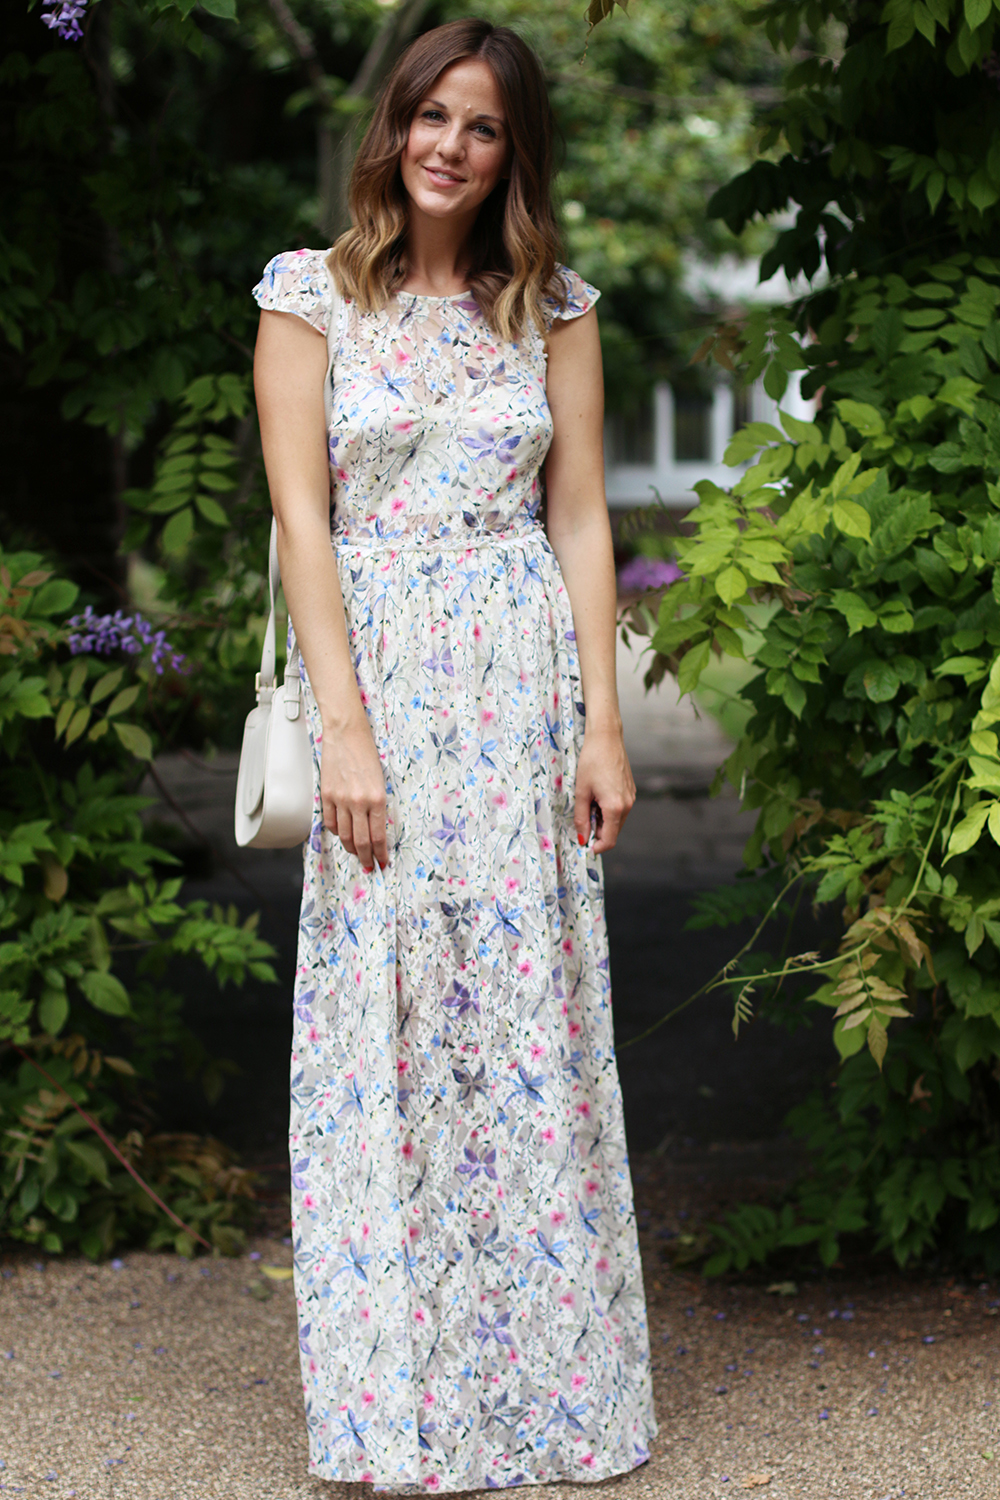 c5bcb4600d09d Wedding outfit inspiration. Free people dress